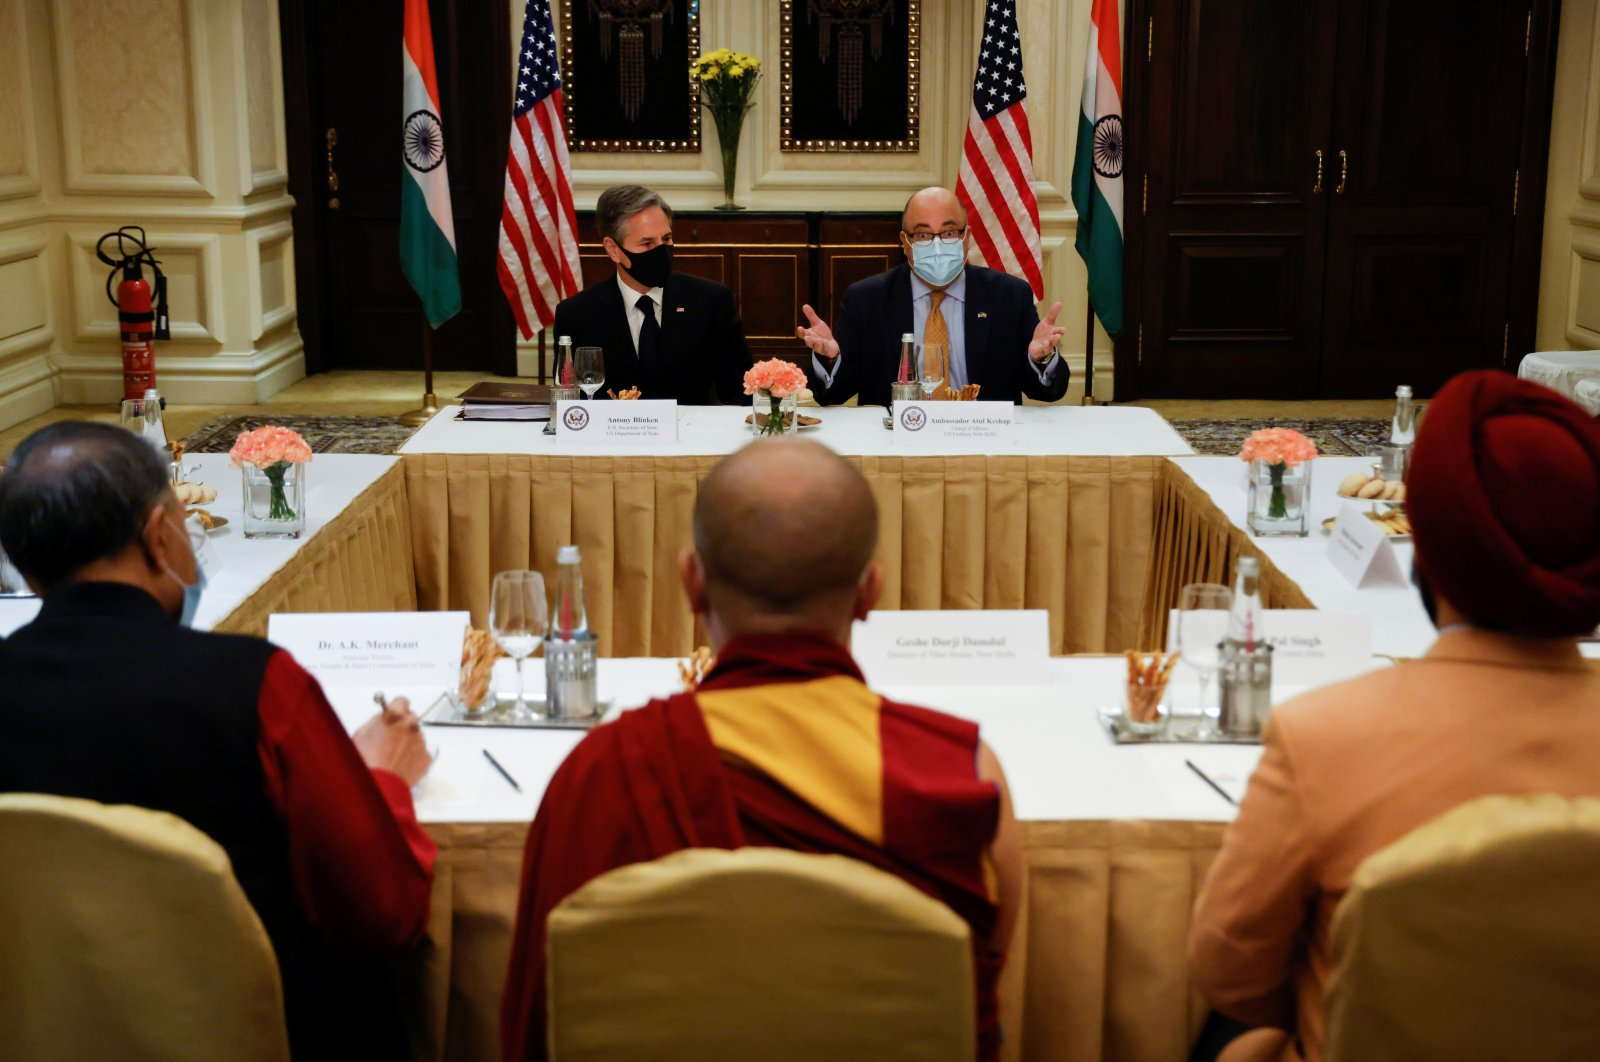 U.S. Secretary of State Antony Blinken and U.S. Ambassador to India Atul Keshap deliver remarks to civil society organization representatives in a meeting room at the Leela Palace Hotel in New Delhi, India, July 28, 2021. (Reuters Photo)